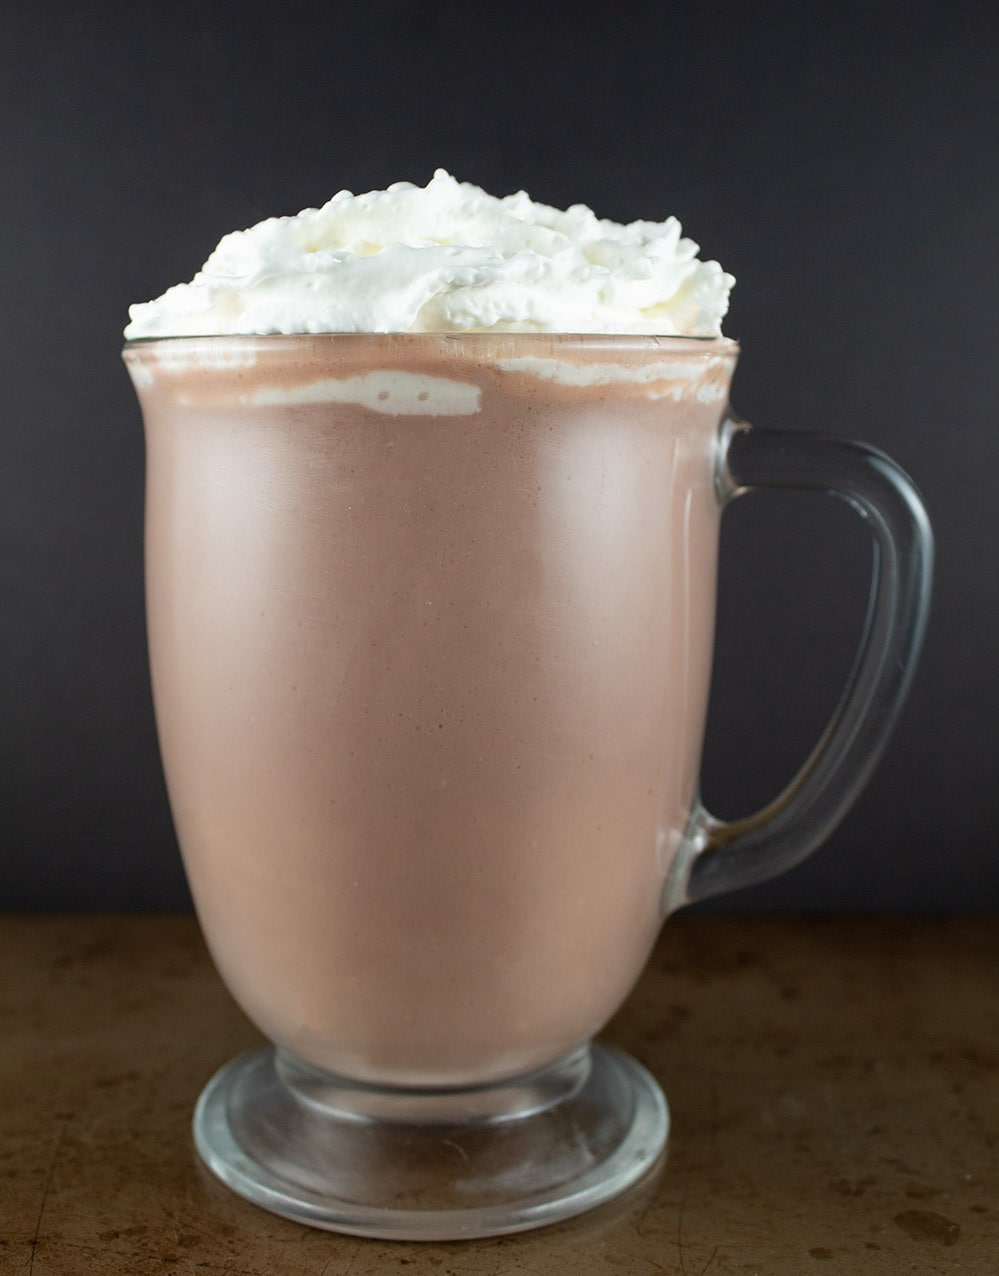 buttery hot chocolate with whipped cream on top in front of a black background